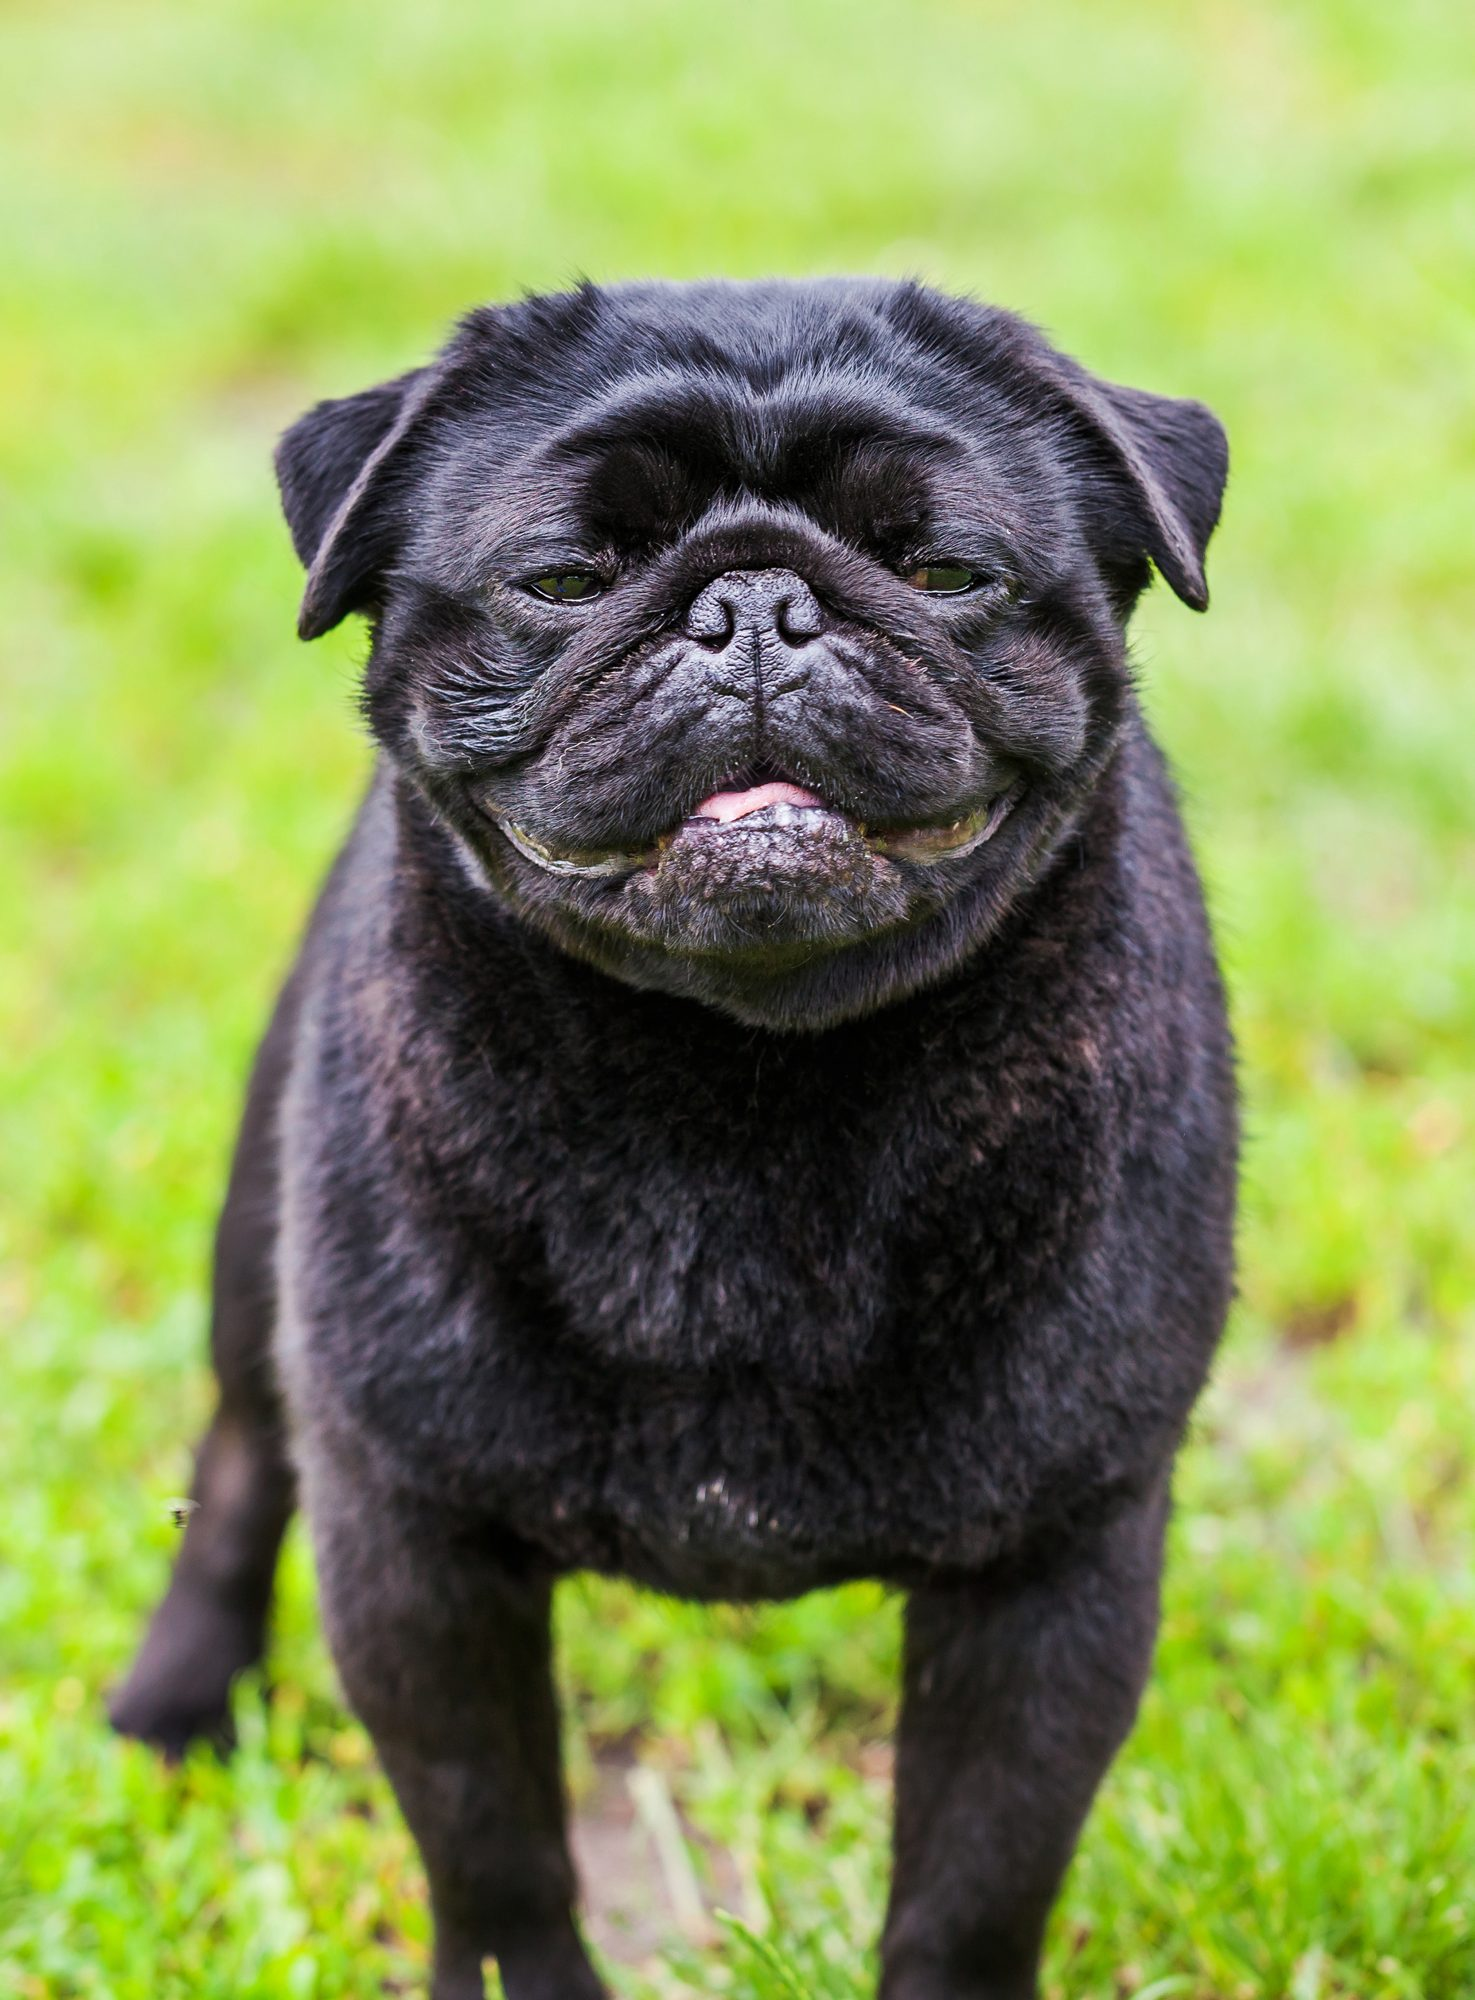 smiling pug dog in grass